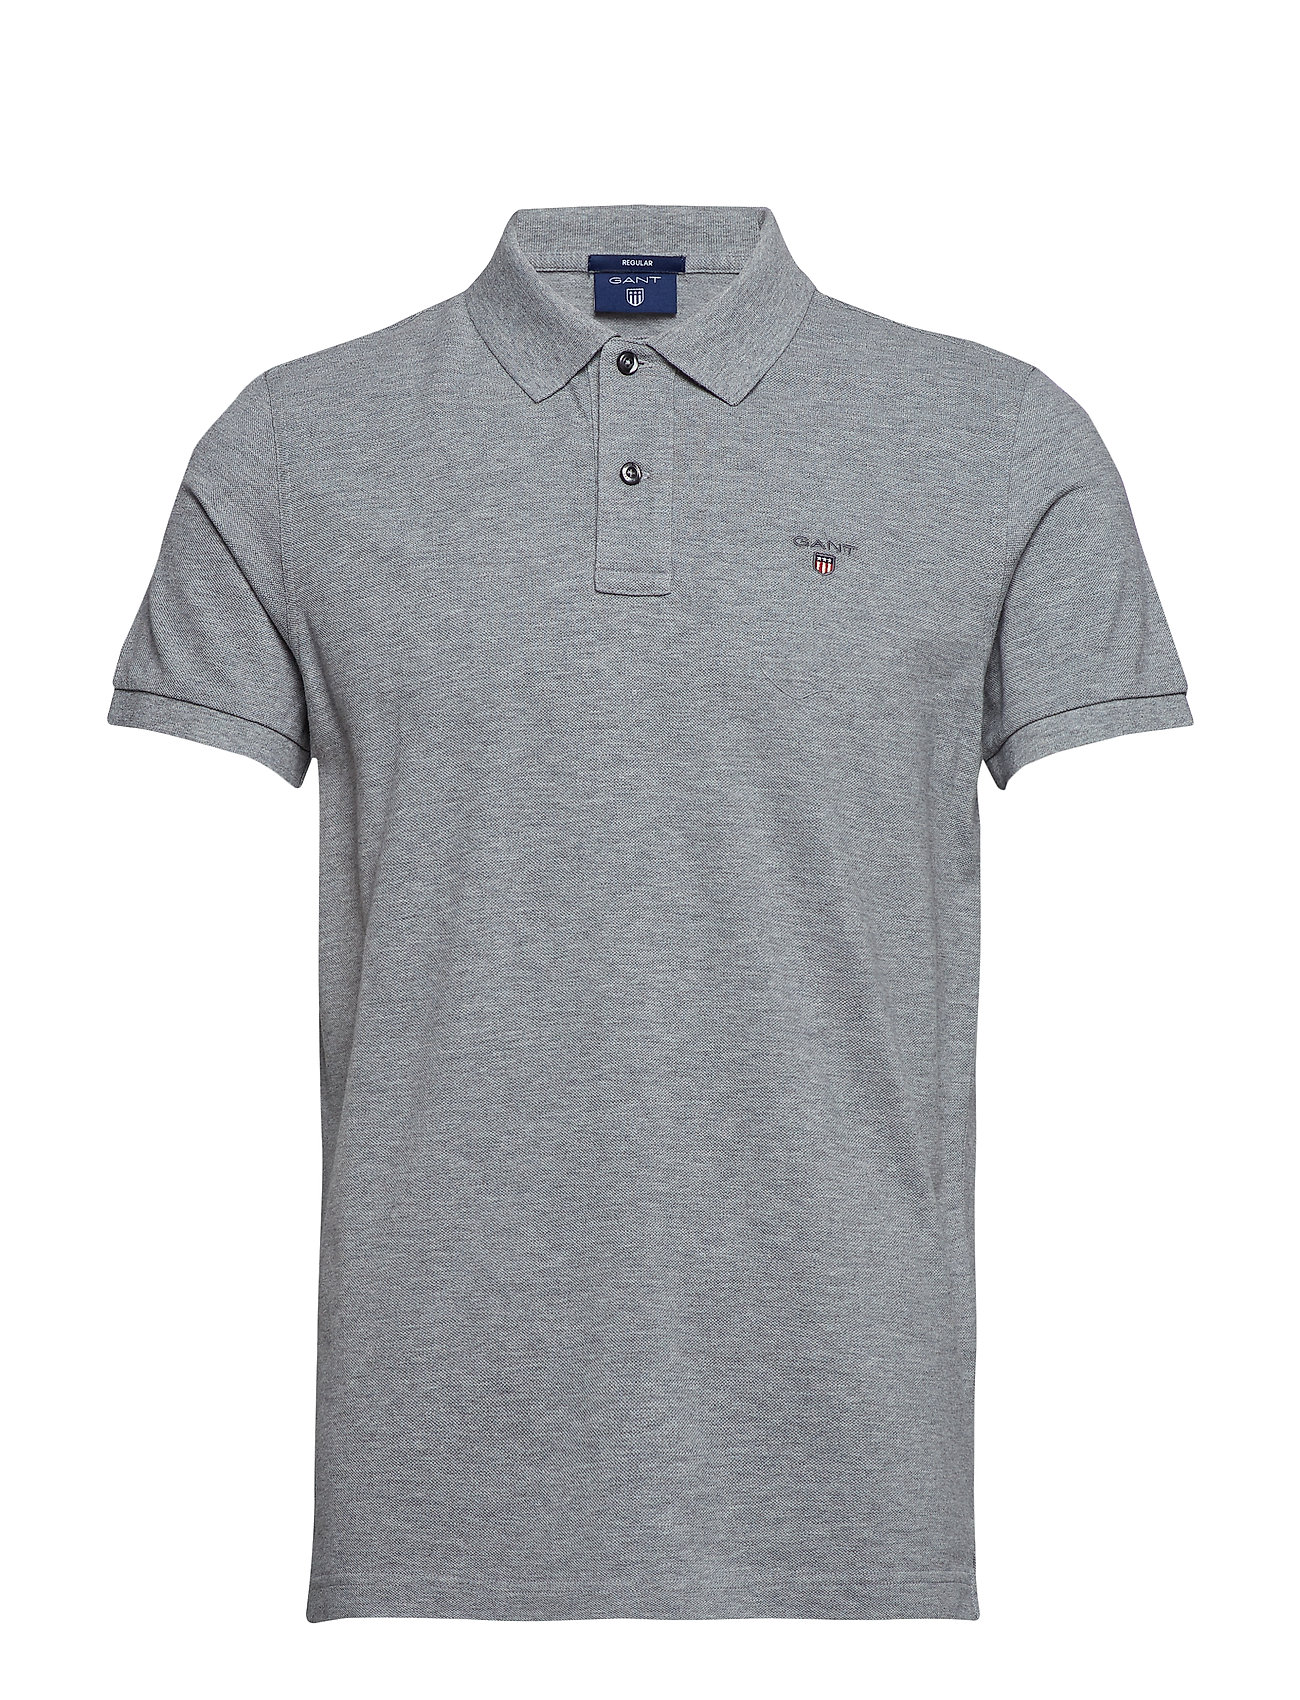 Gant THE ORIGINAL PIQUE SS RUGGER - GREY MELANGE